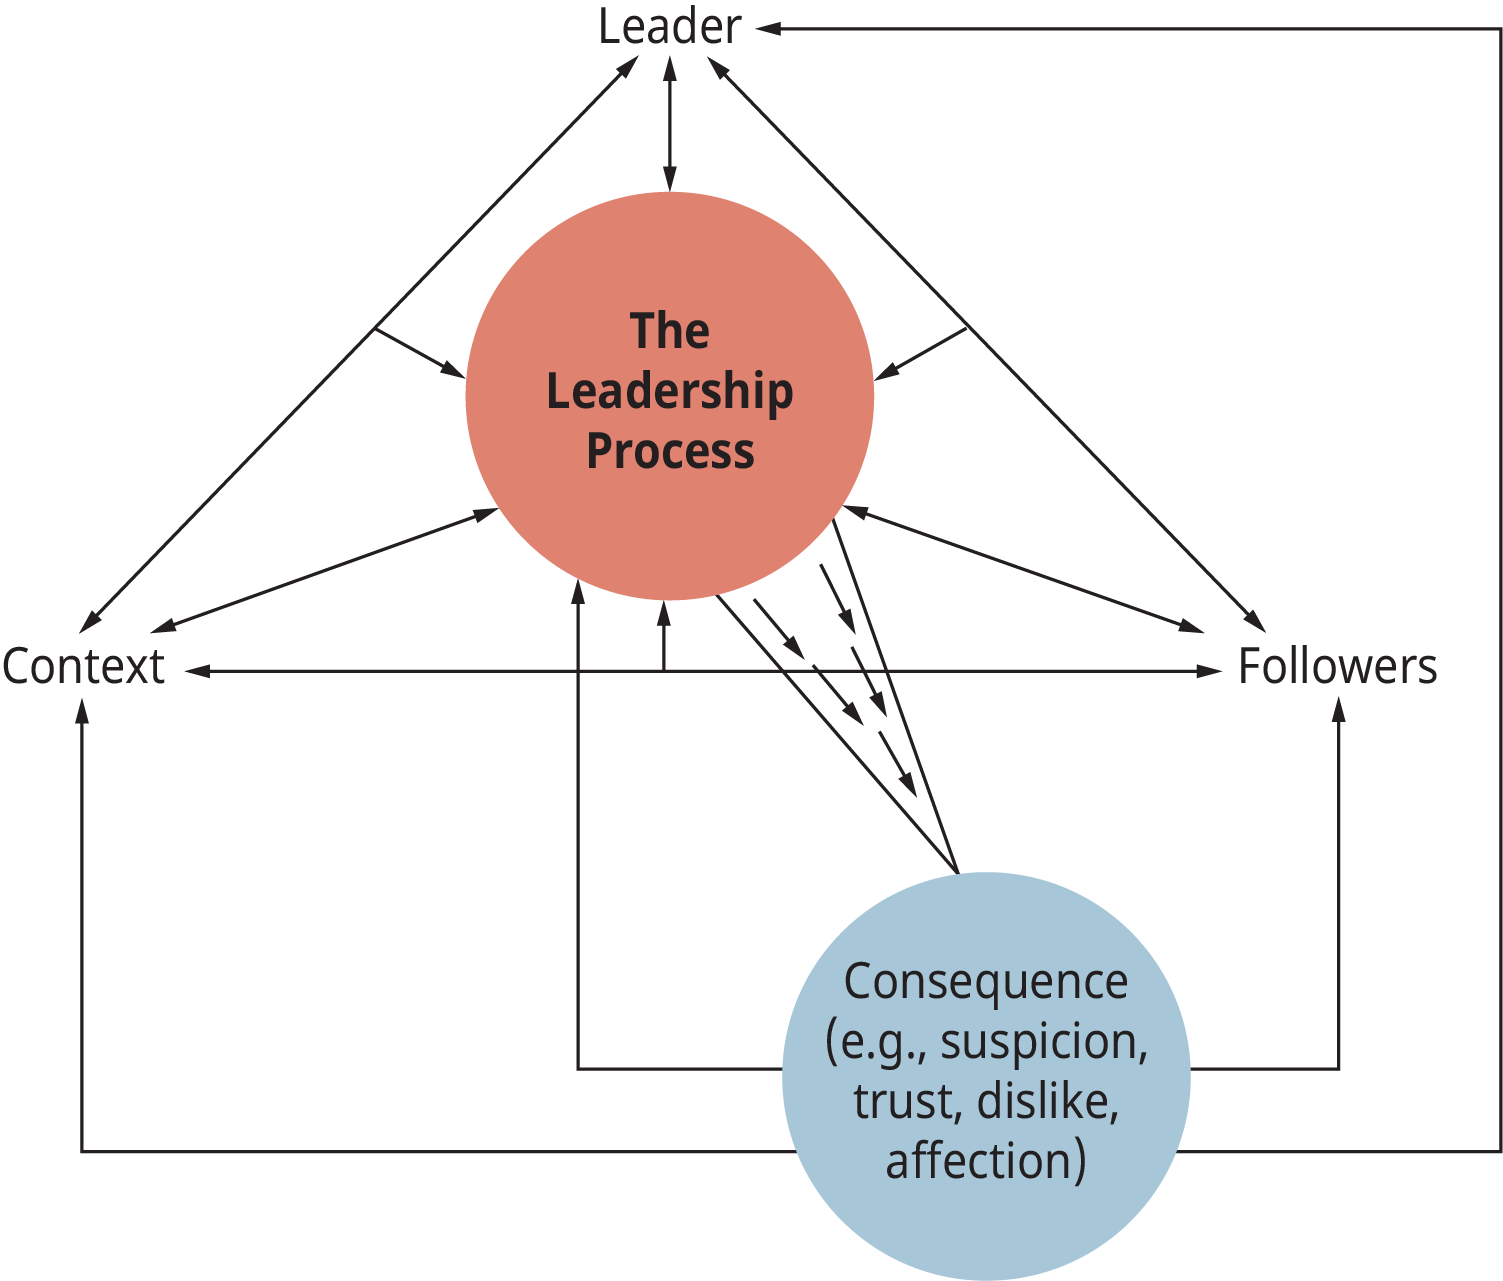 A diagram shows how the components of the leadership process fit together.